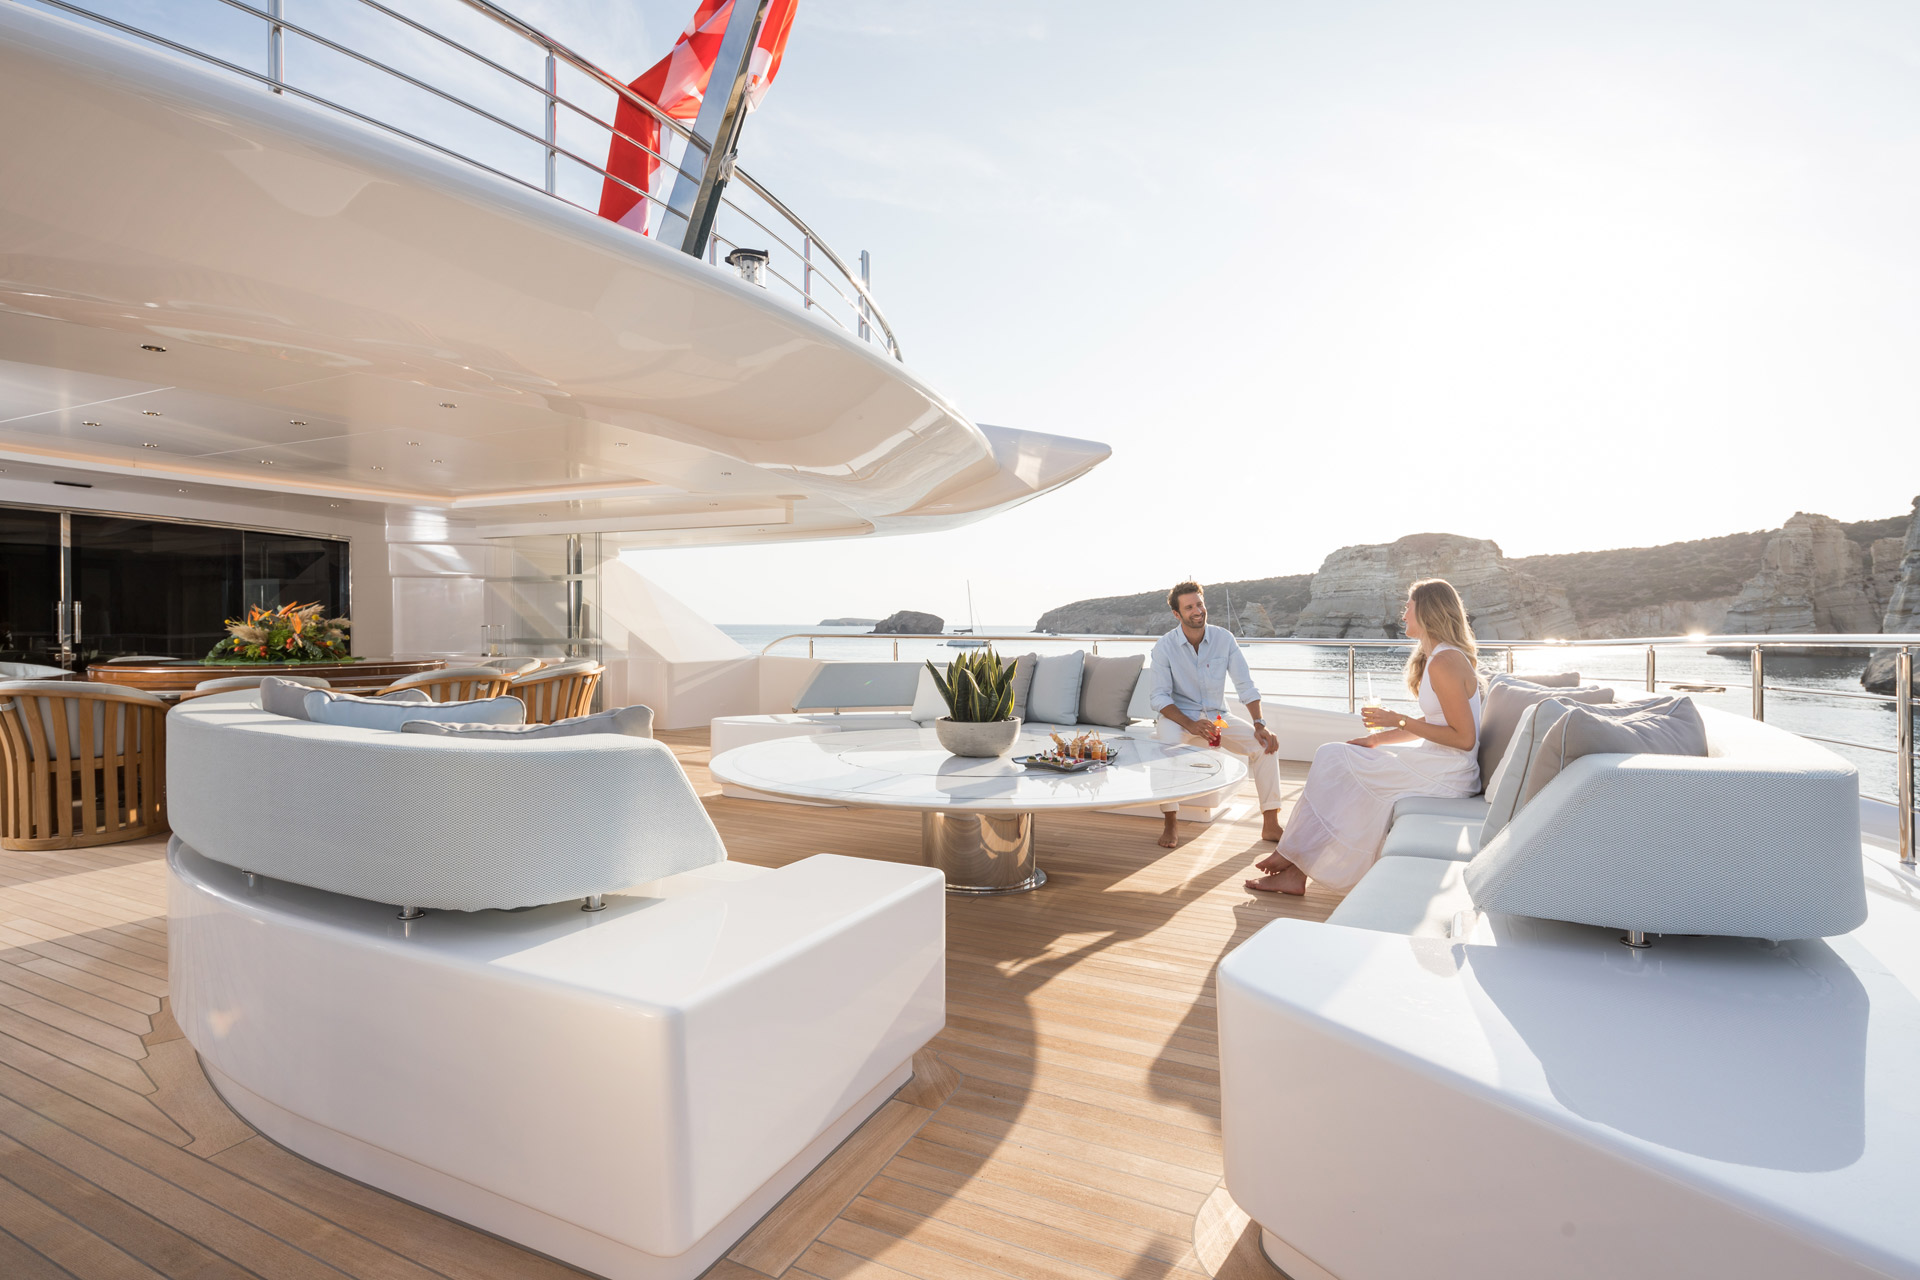 Aft deck seating aboard O'PARI superyacht launched in 2020 - Photo © Jeff Brown Photography